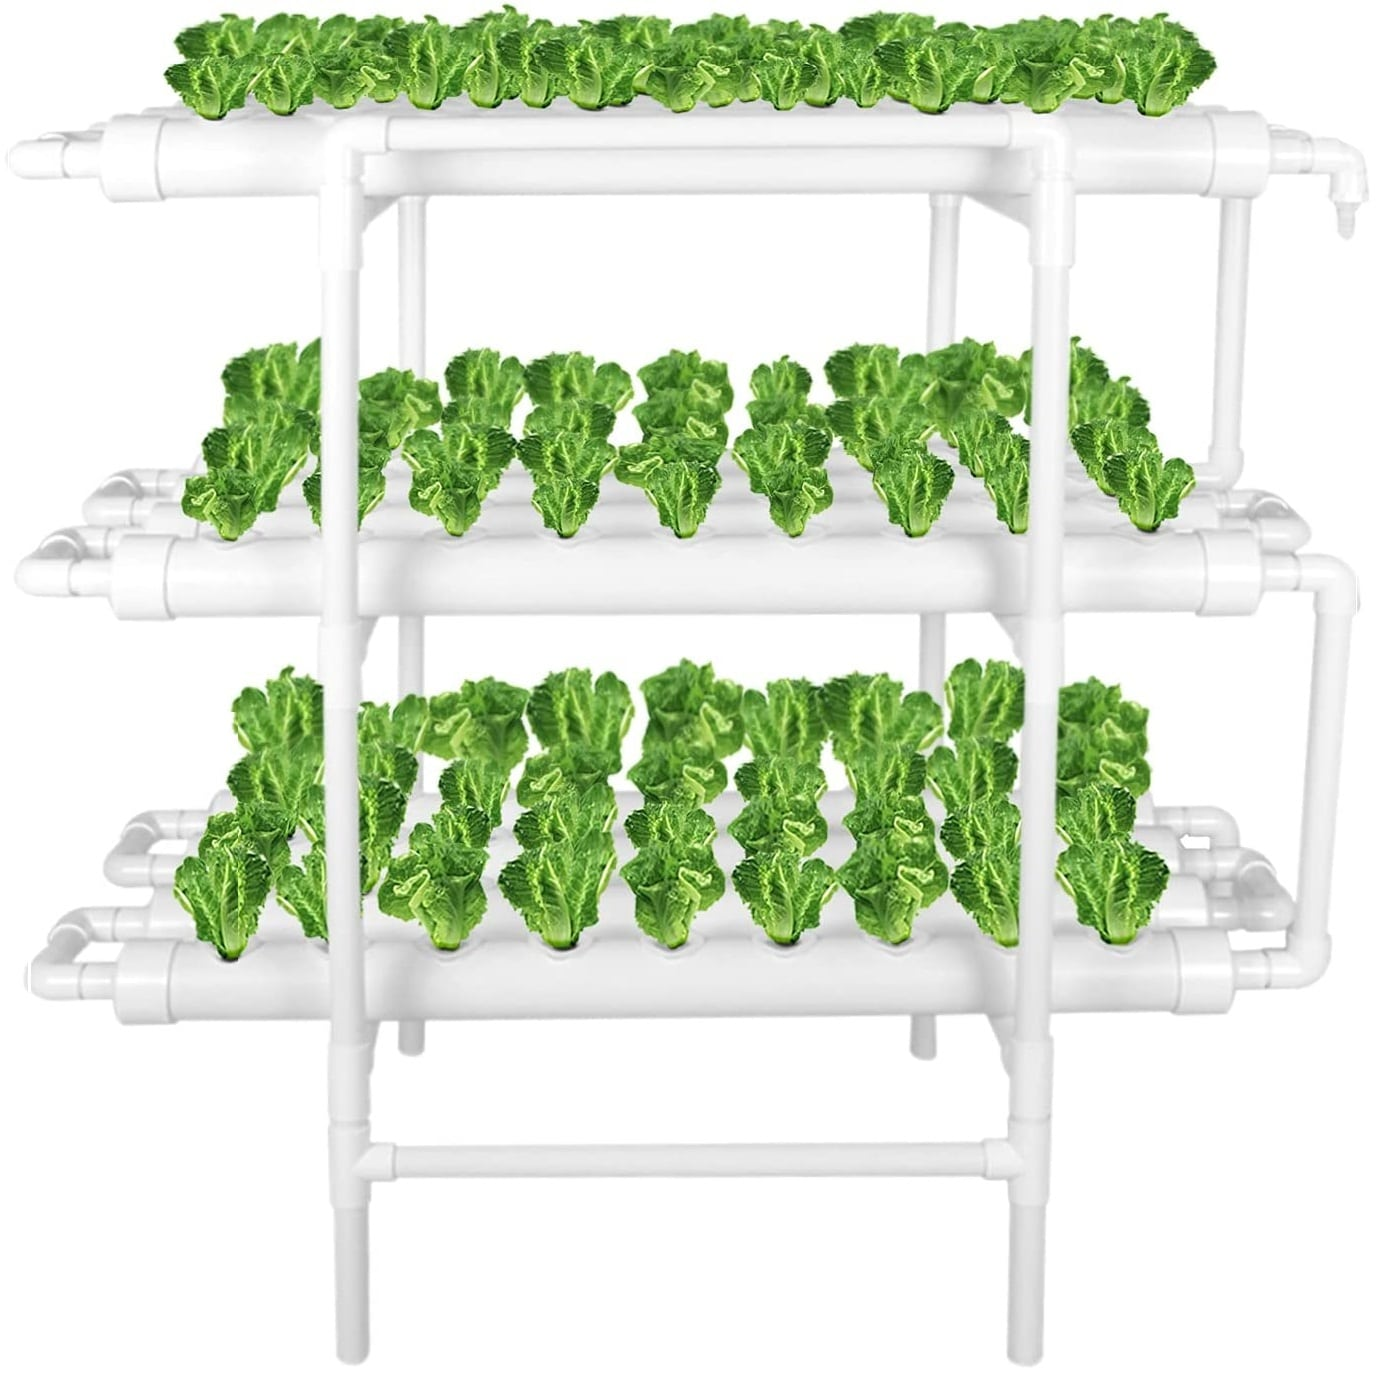 LAPOND Hydroponic Grow Kit – Best Easy to Assemble and Use